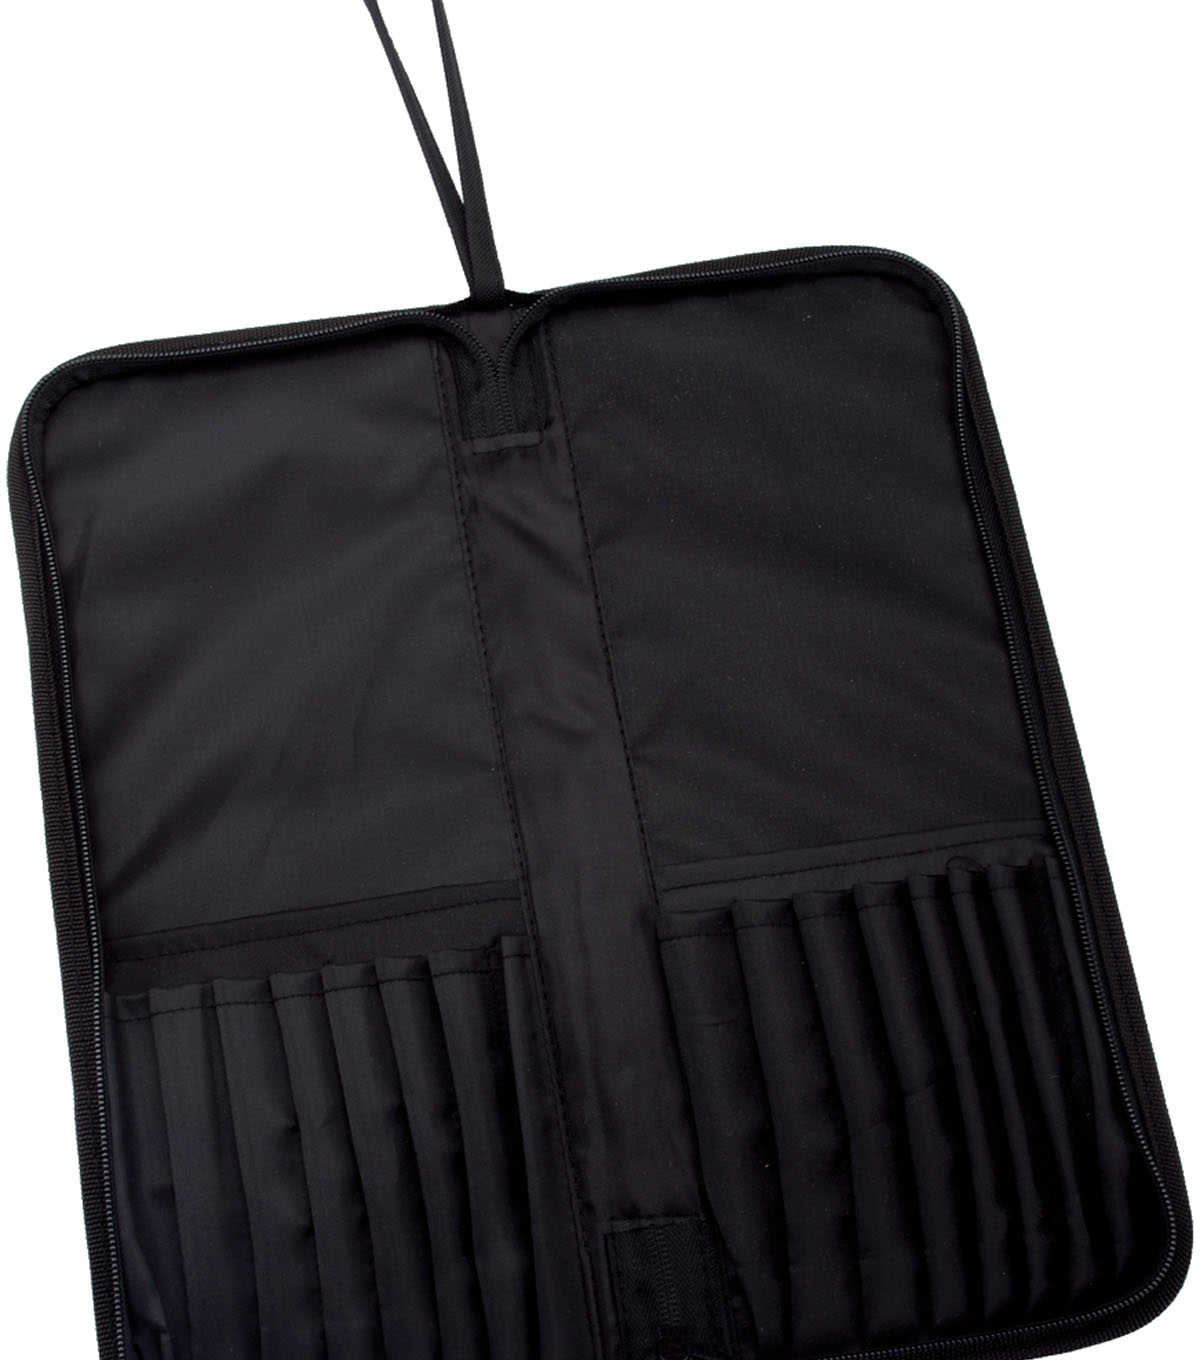 Royal & Langnickel Keep N\u0027 Carry Zippered Long Handle Brush Carrier